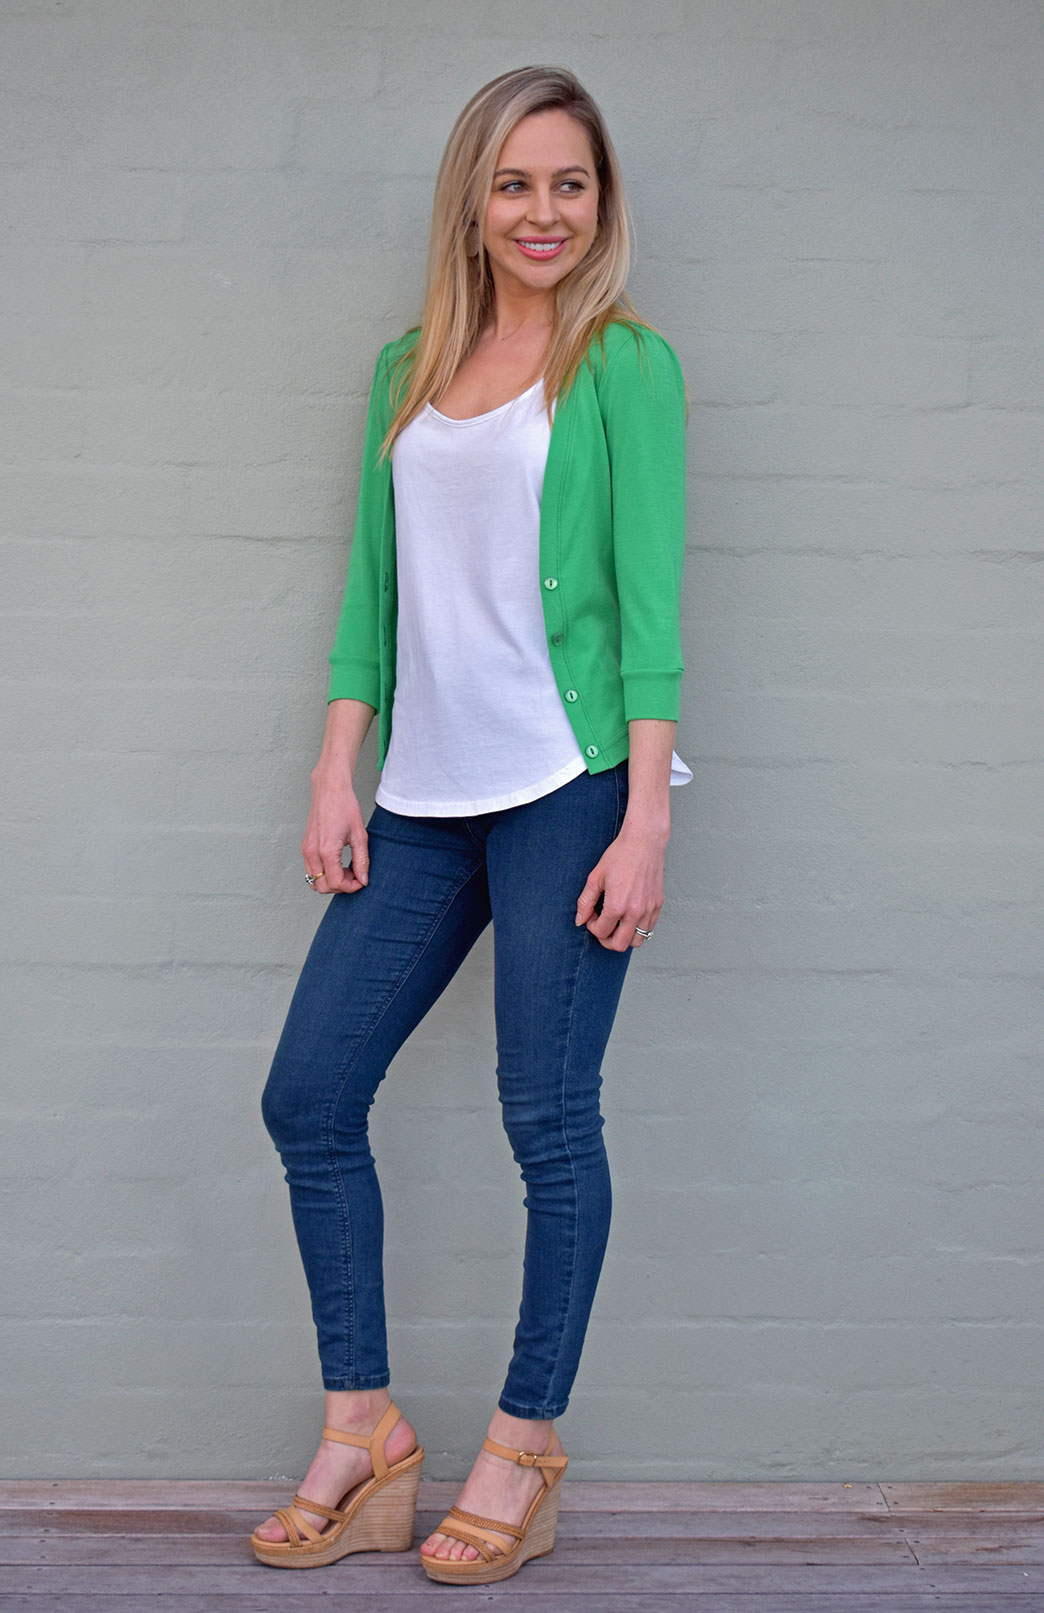 Crop Cardigan - 3/4 Sleeve - Women's Kelly Green Crop Short Cardigan with 3/4 Sleeves and Buttons - Smitten Merino Tasmania Australia